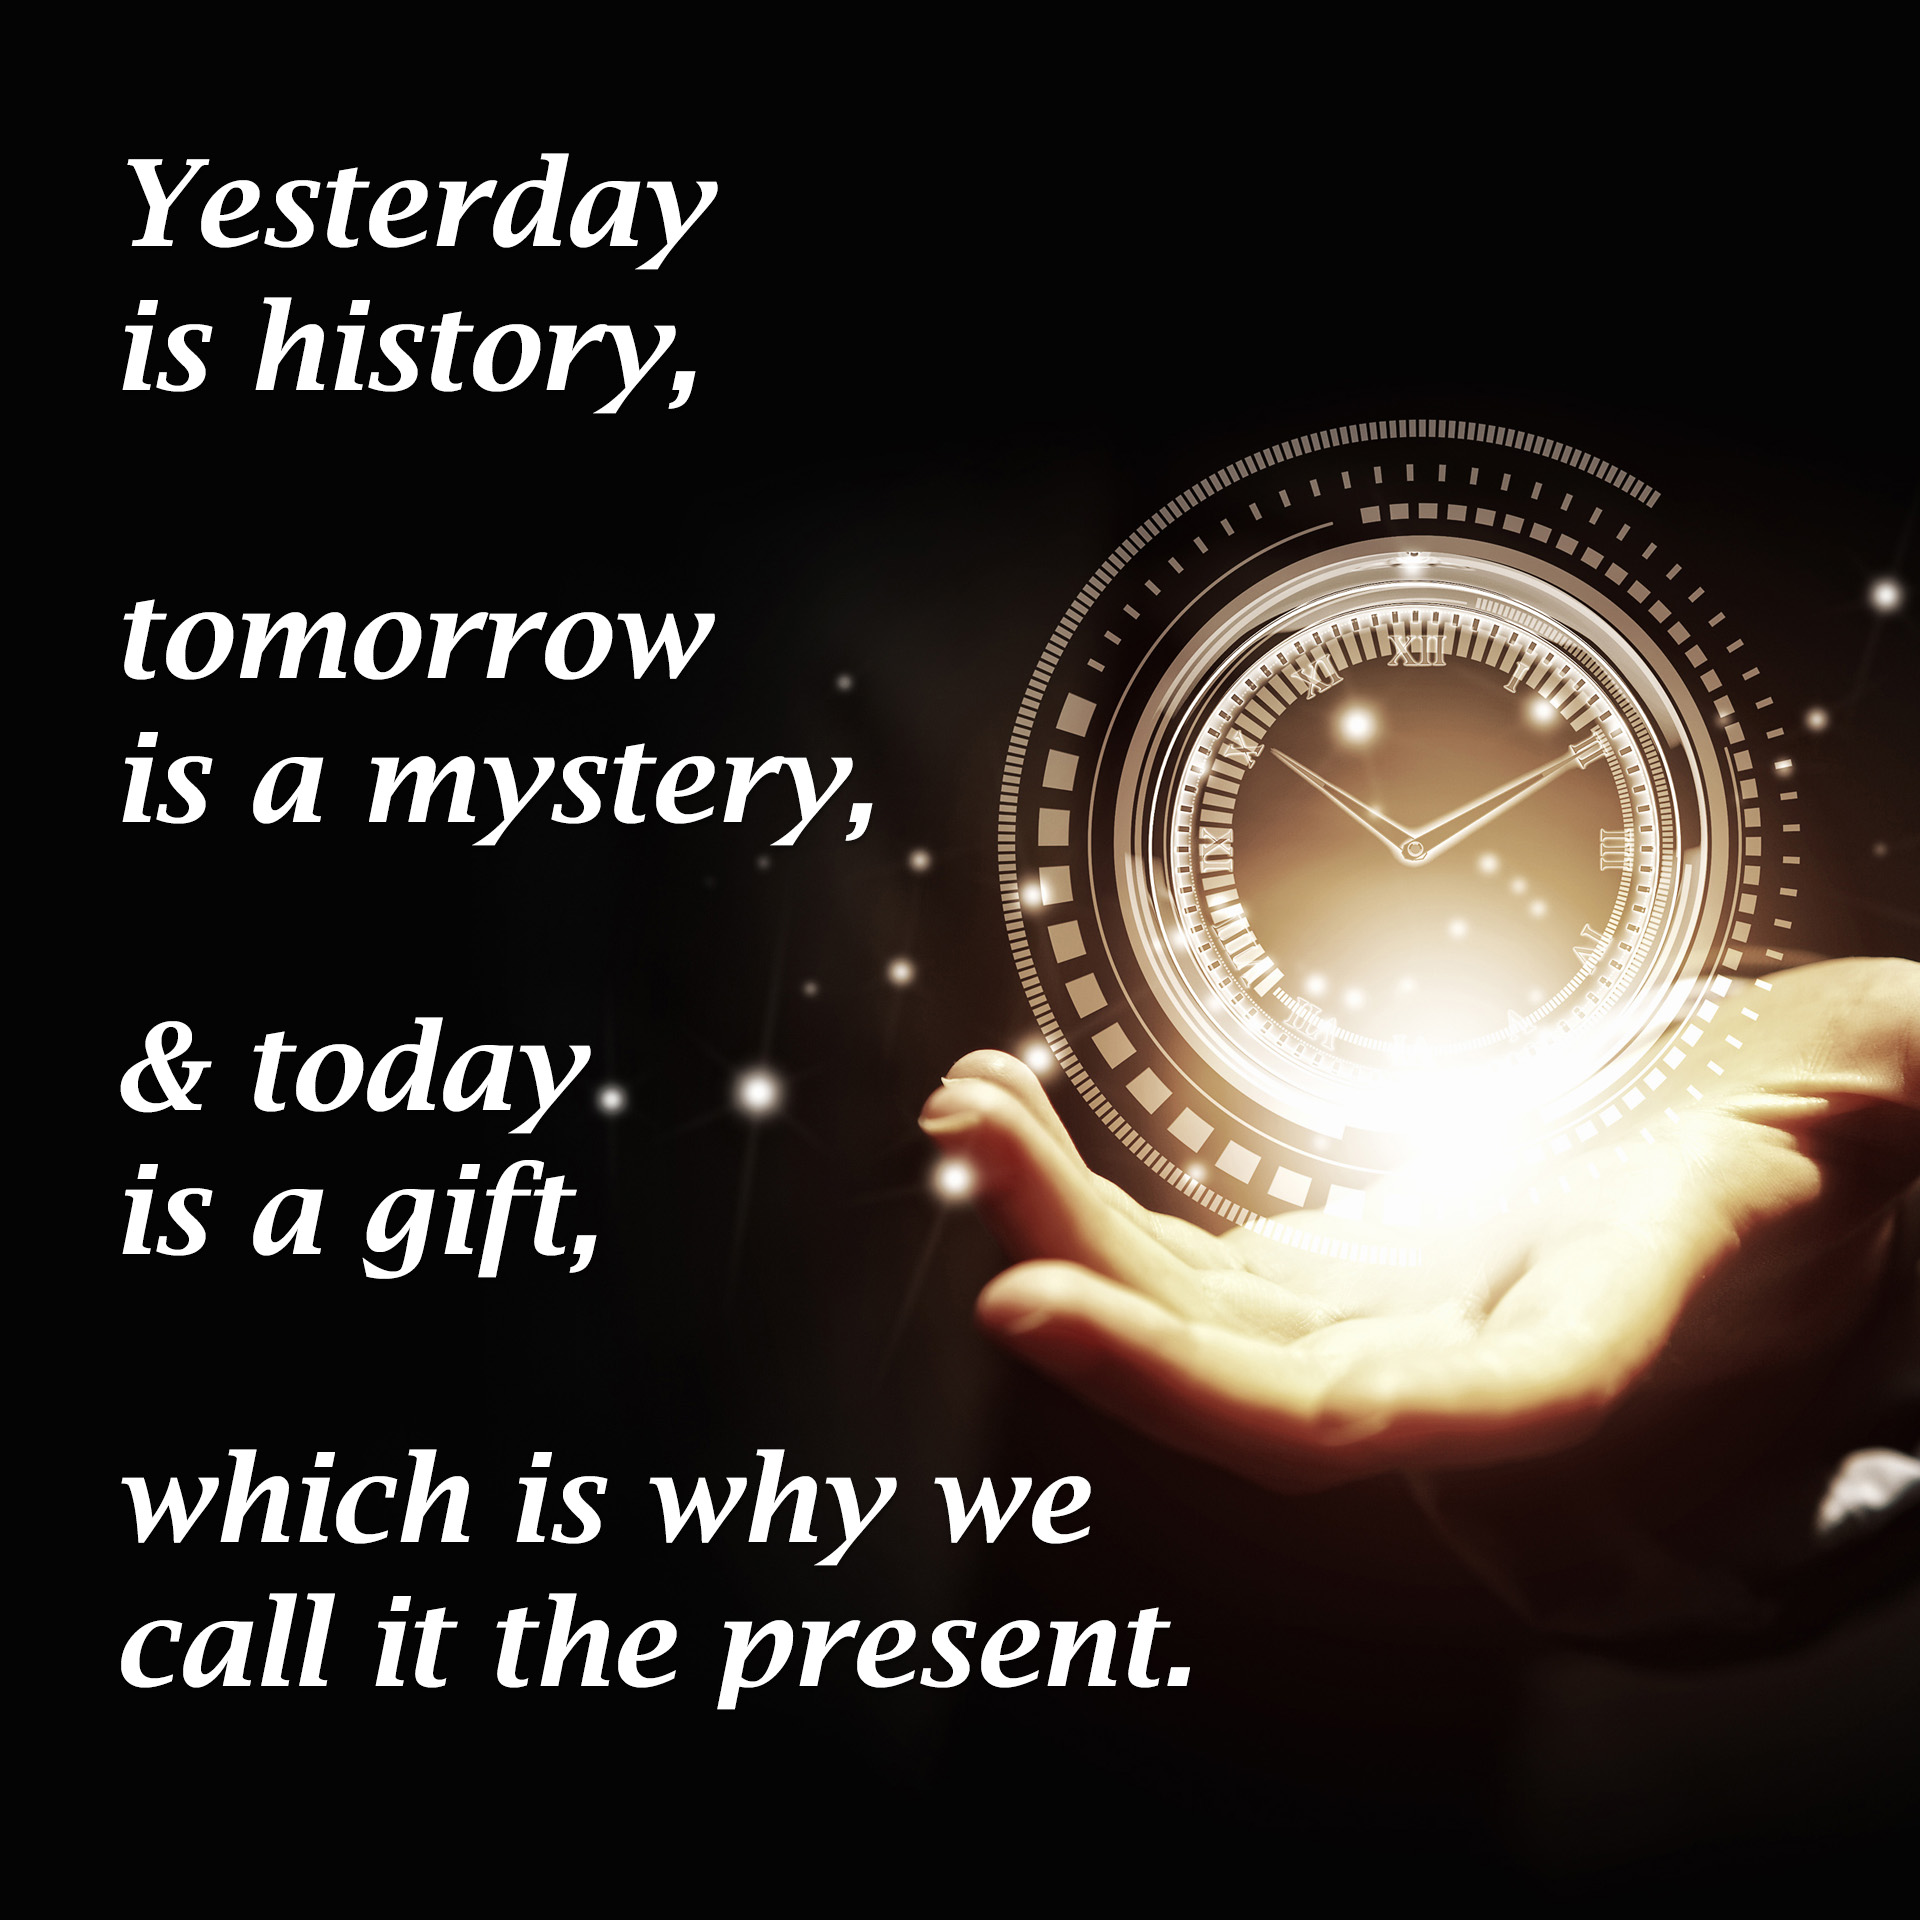 Yesterday is history, tomorrow is a mystery, & today is a gift, which is why we call it the present.